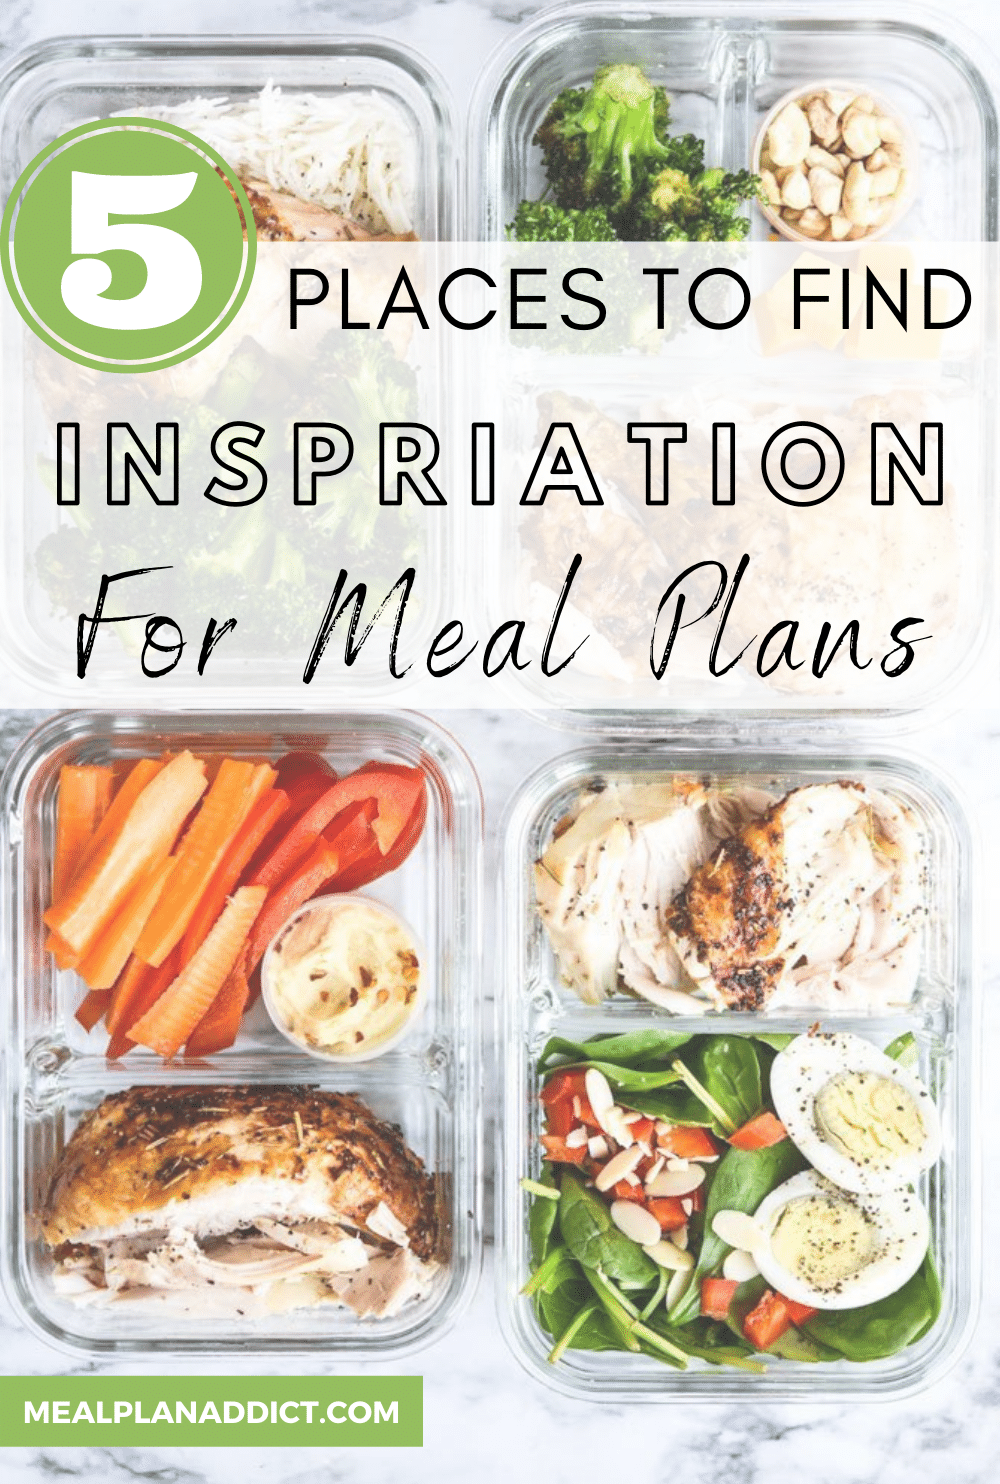 5 Places to Find Inspiration for Meal Plans